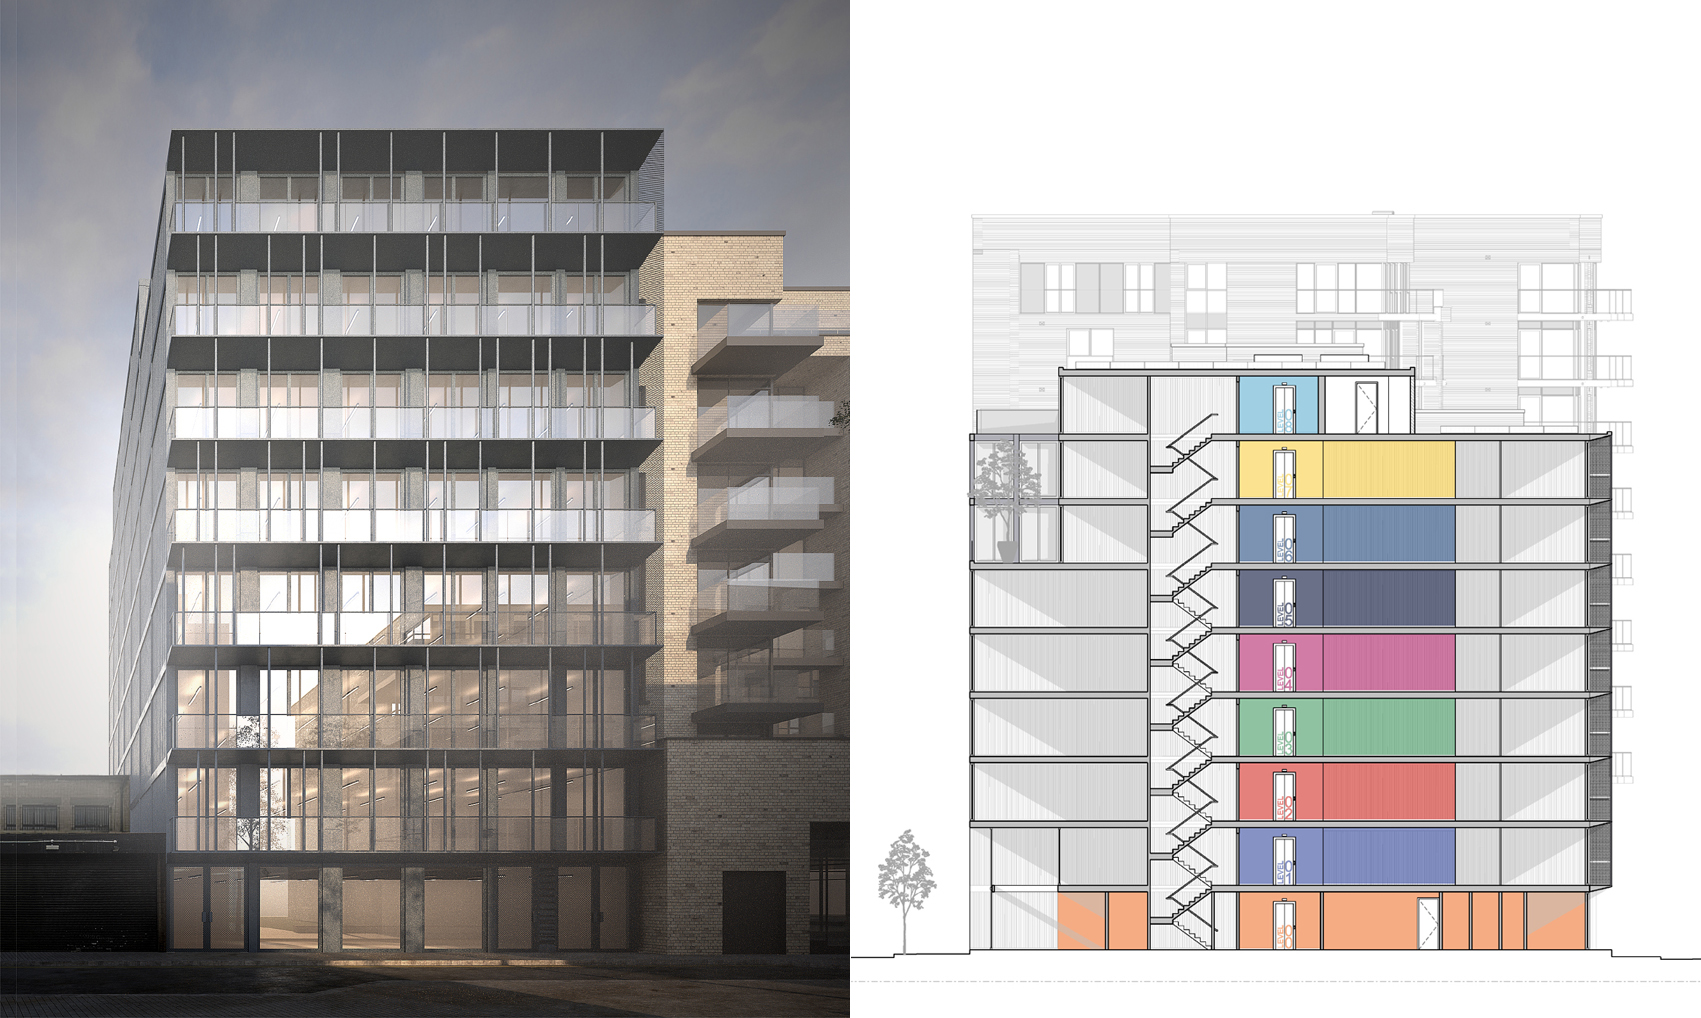 118 Vallance Road, an East London new build office development designed by Patalab, has received planning permission from London Borough of Tower Hamlets